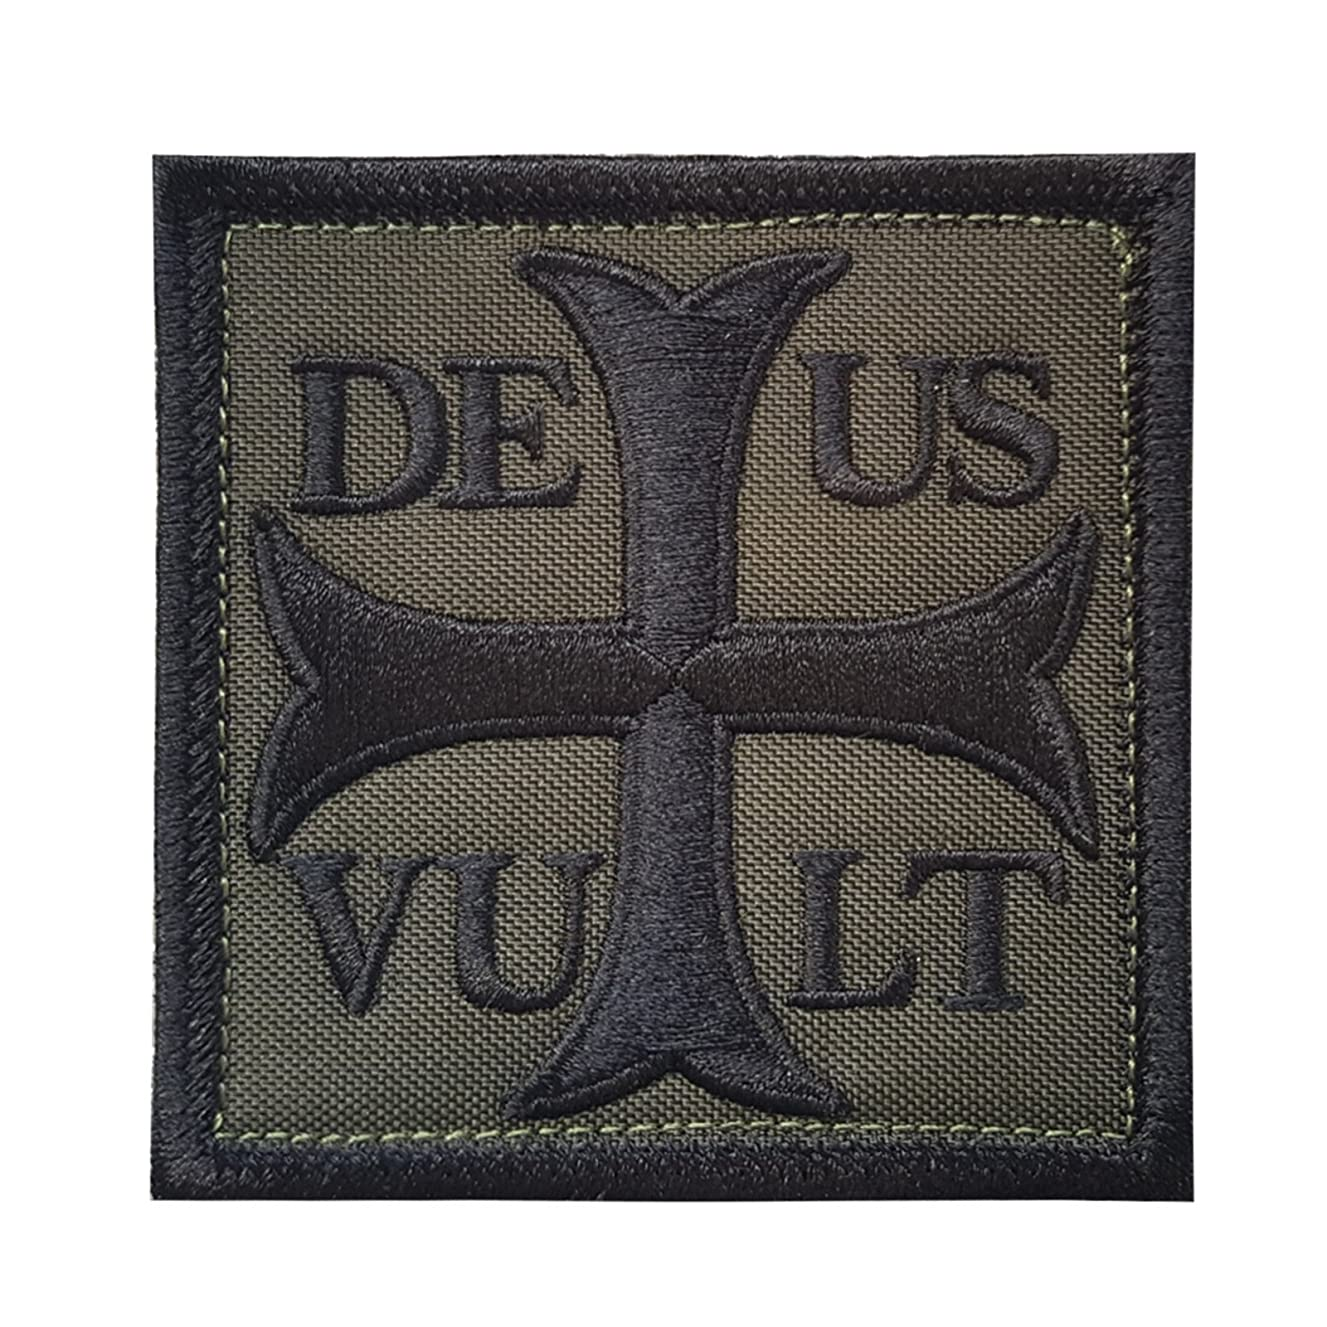 LEGEEON Olive Drab OD Deus Vult God Wills It Crusader Knight Holy Cross Templar Crusaders Morale Hook&Loop Patch